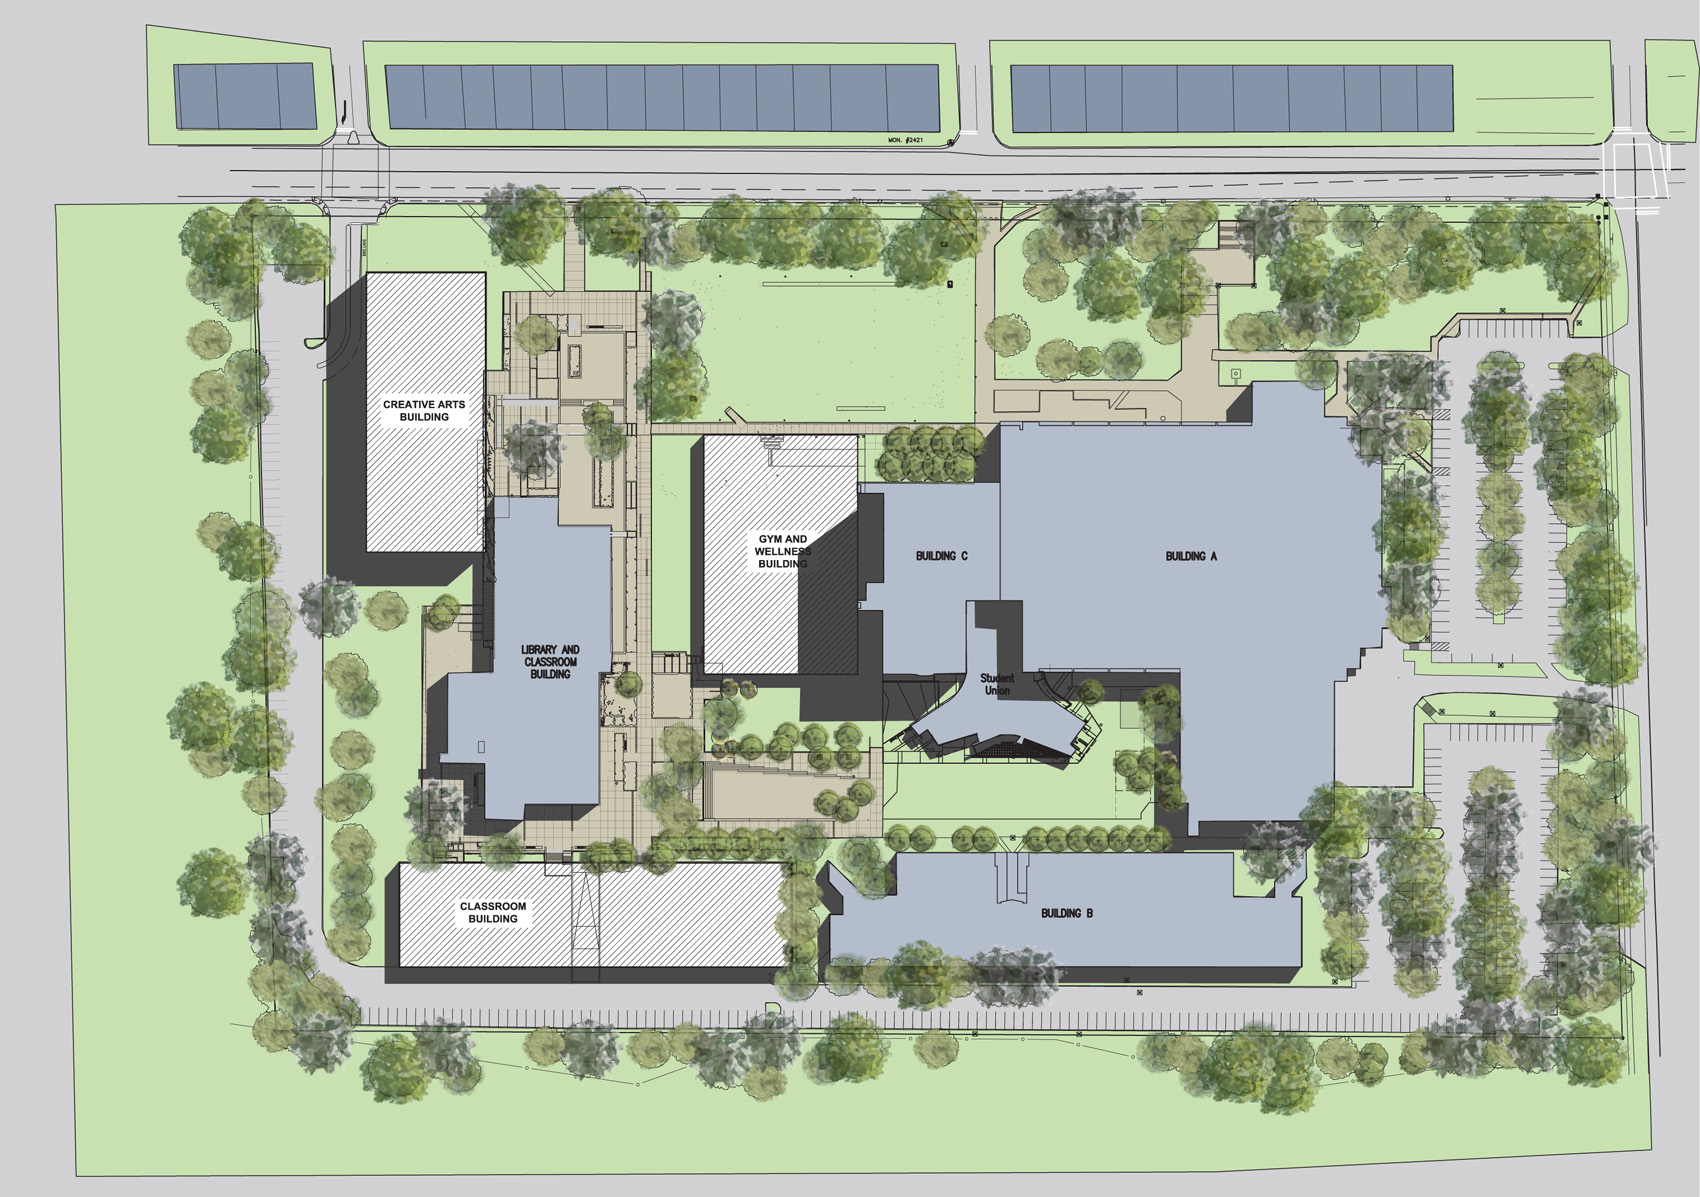 Langara campus facilities facilities master plan for Planner site